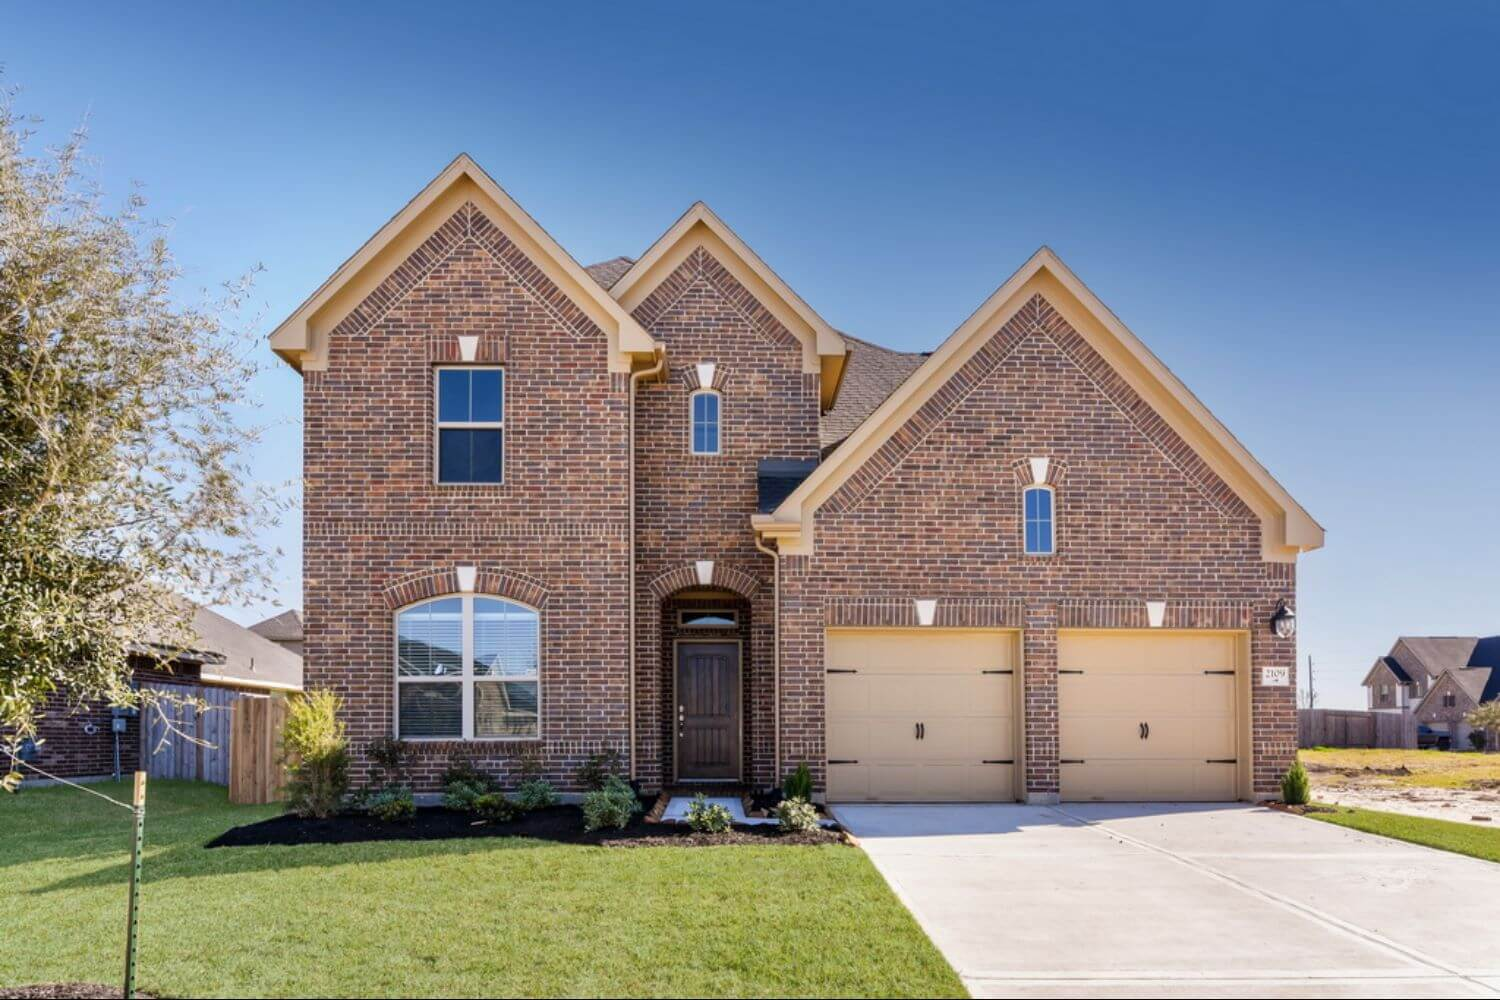 Pearland Parkway Homes - Home GiftWatches CO